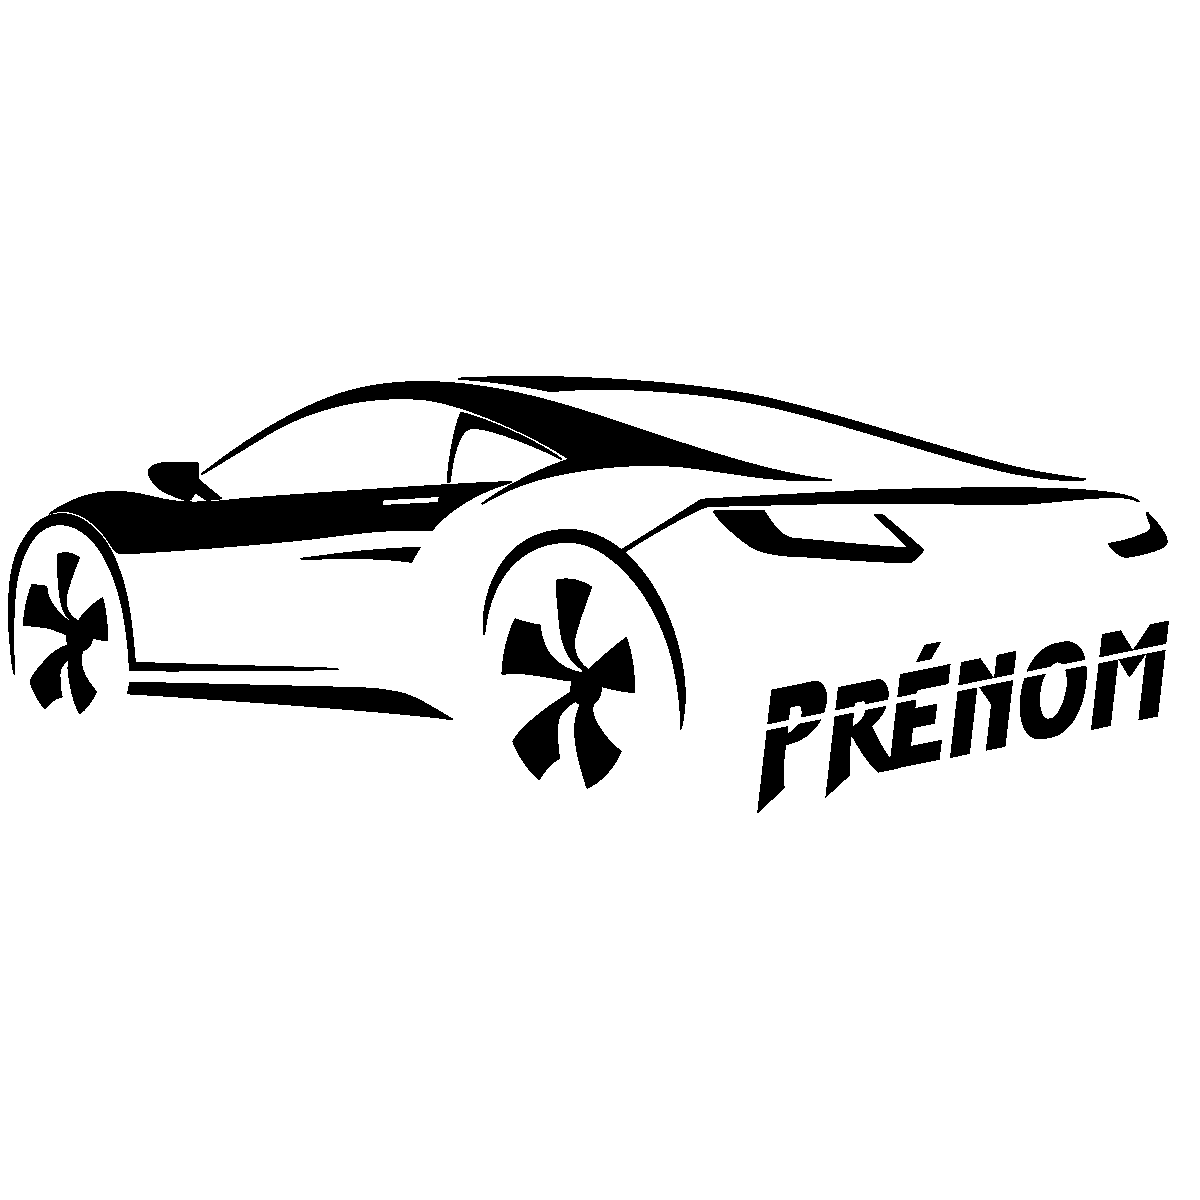 Sticker prenom personnalisable voiture de luxe sportive ambiance sticker name sand 053 png